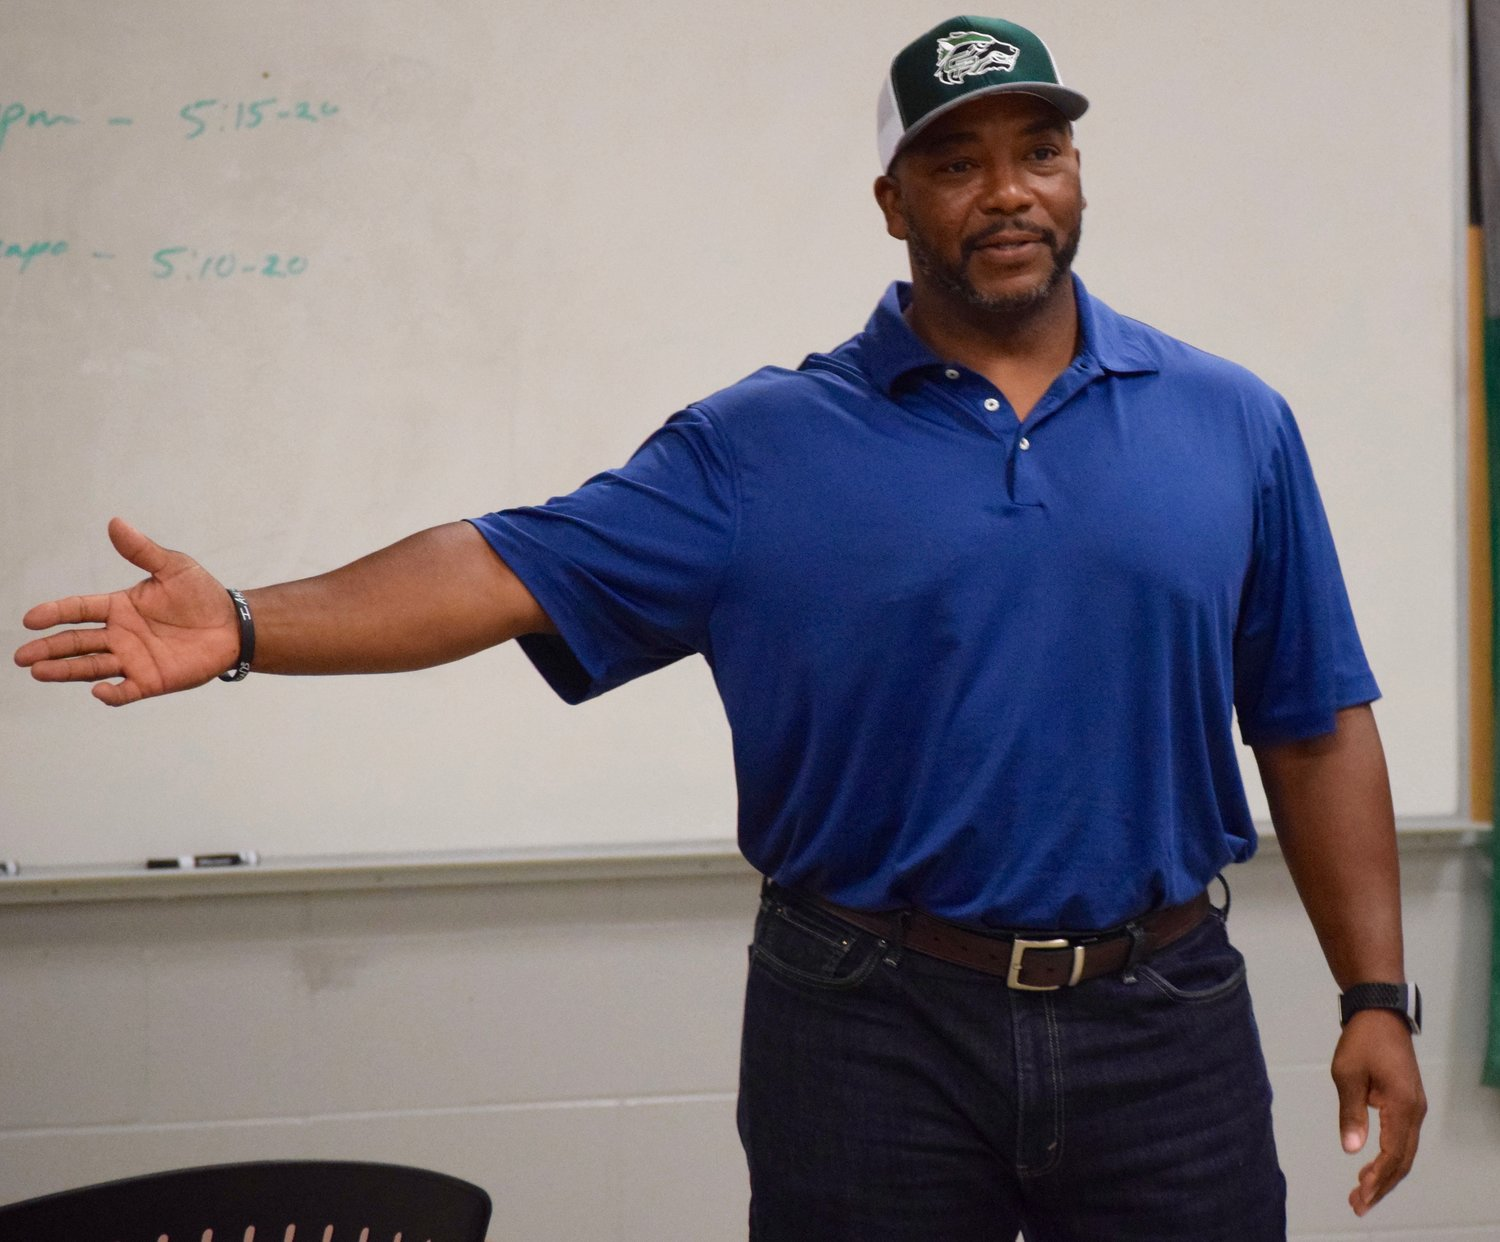 Lanny Williams was announced as the new head baseball coach at Cedar Park last week. He spent more than two decades as a coach in Brenham, including seven as the head coach.